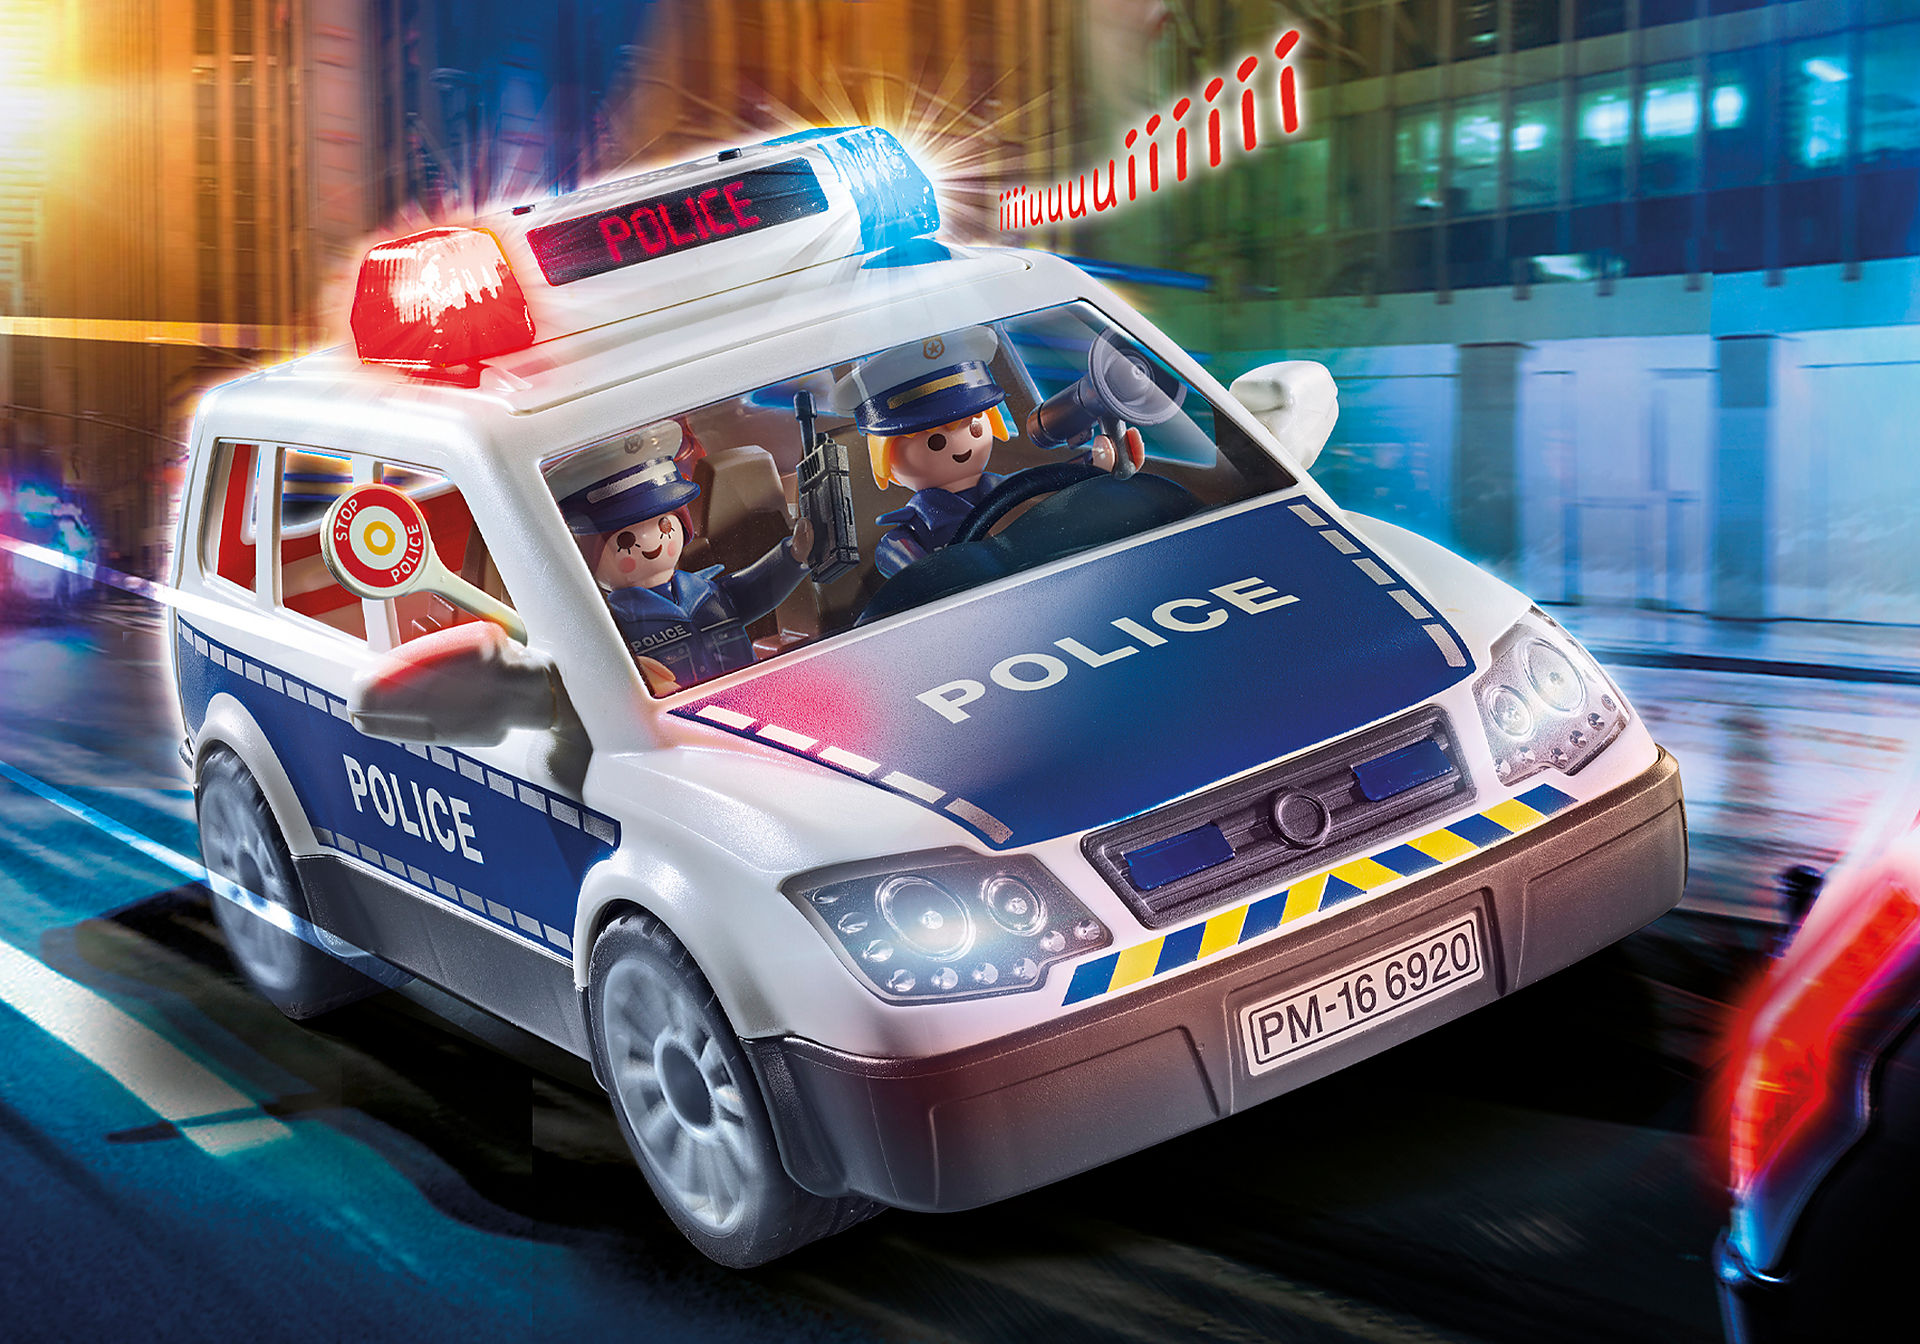 http://media.playmobil.com/i/playmobil/6873_product_detail/Polizei-Einsatzwagen